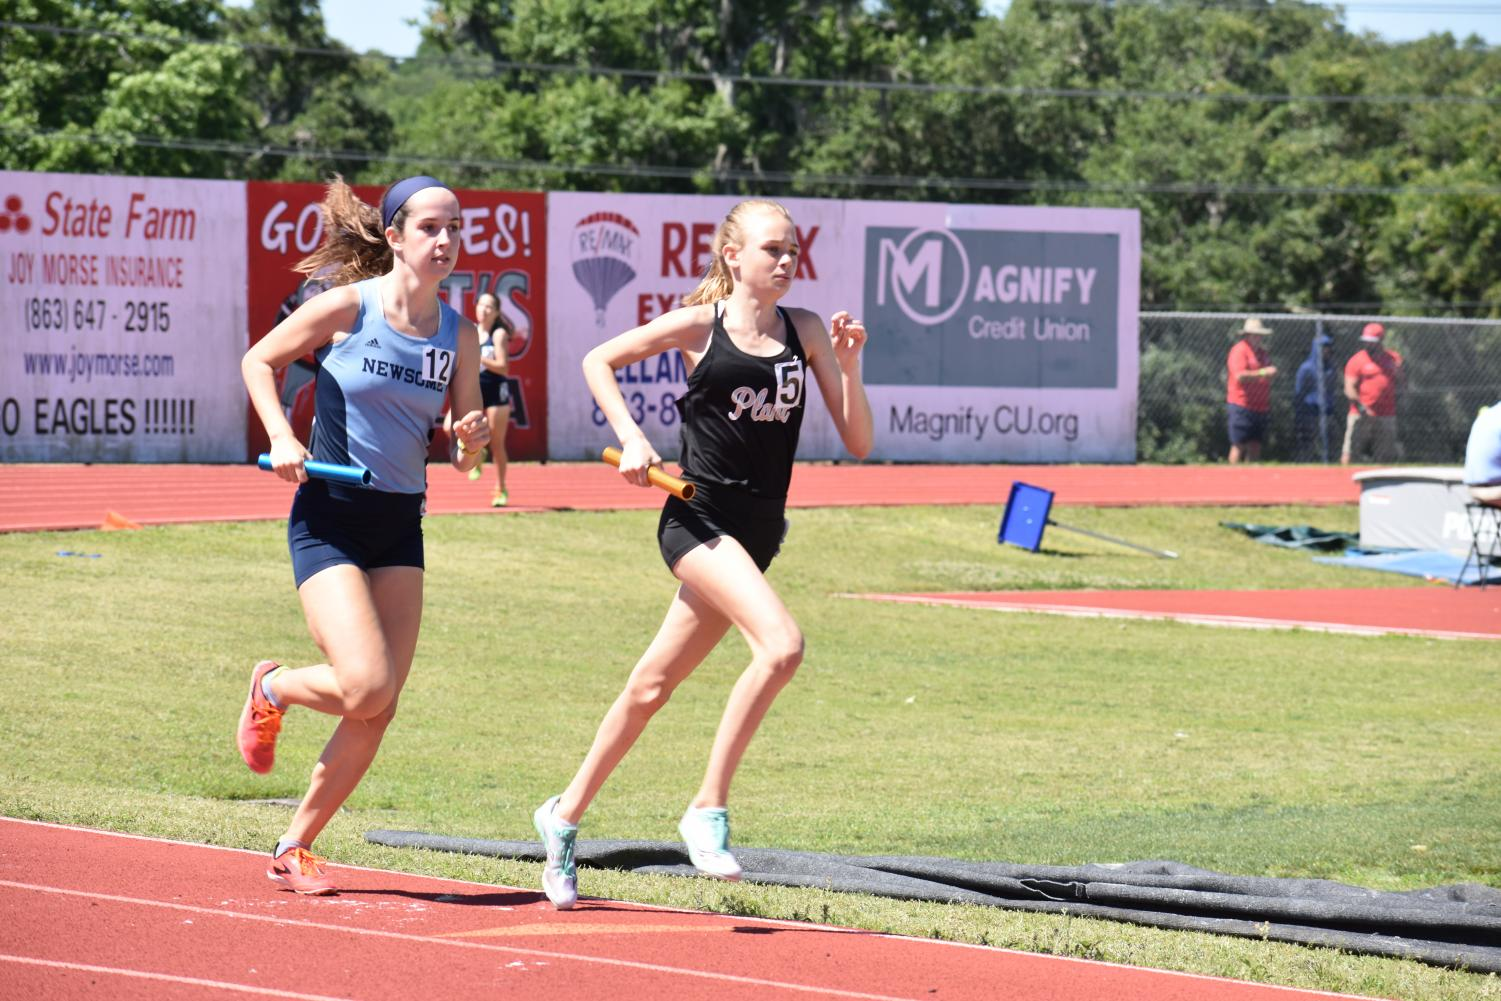 Keeping+her+eyes+up%2C+Mary+Ellen+Eudaly+sprints+down+the+straightaway+in+the+4x800+relay+at+regionals+April+27+at+George+Jenkins+High+School.+Eudaly+also+raced+the+3200-meters+and+1600-meters+at+regionals+and+qualified+for+states+in+both+events.+